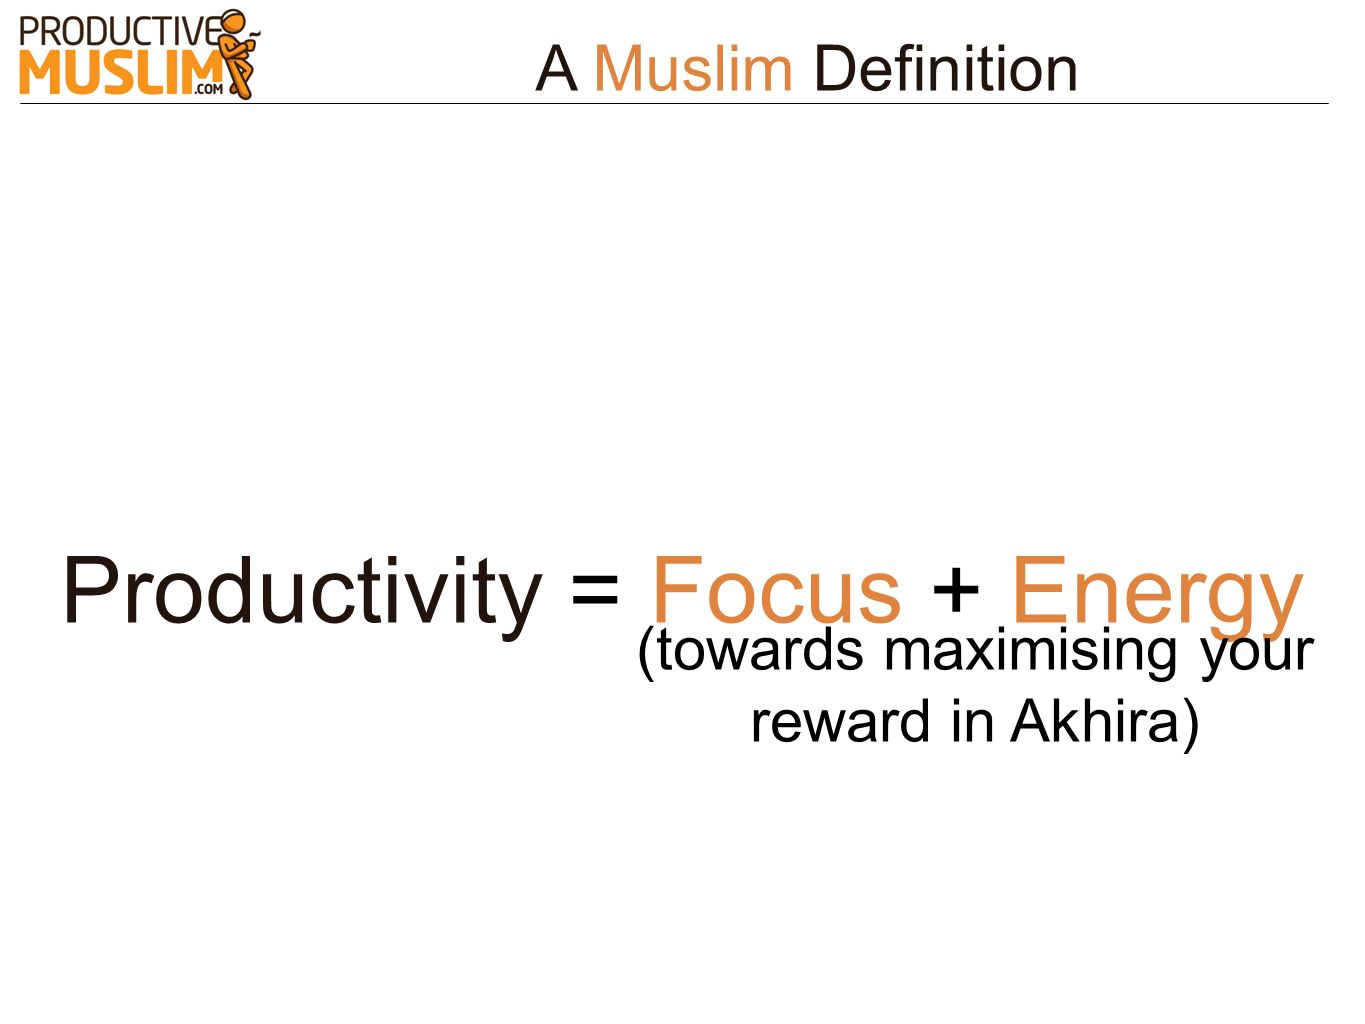 Productivity = Focus + Energy